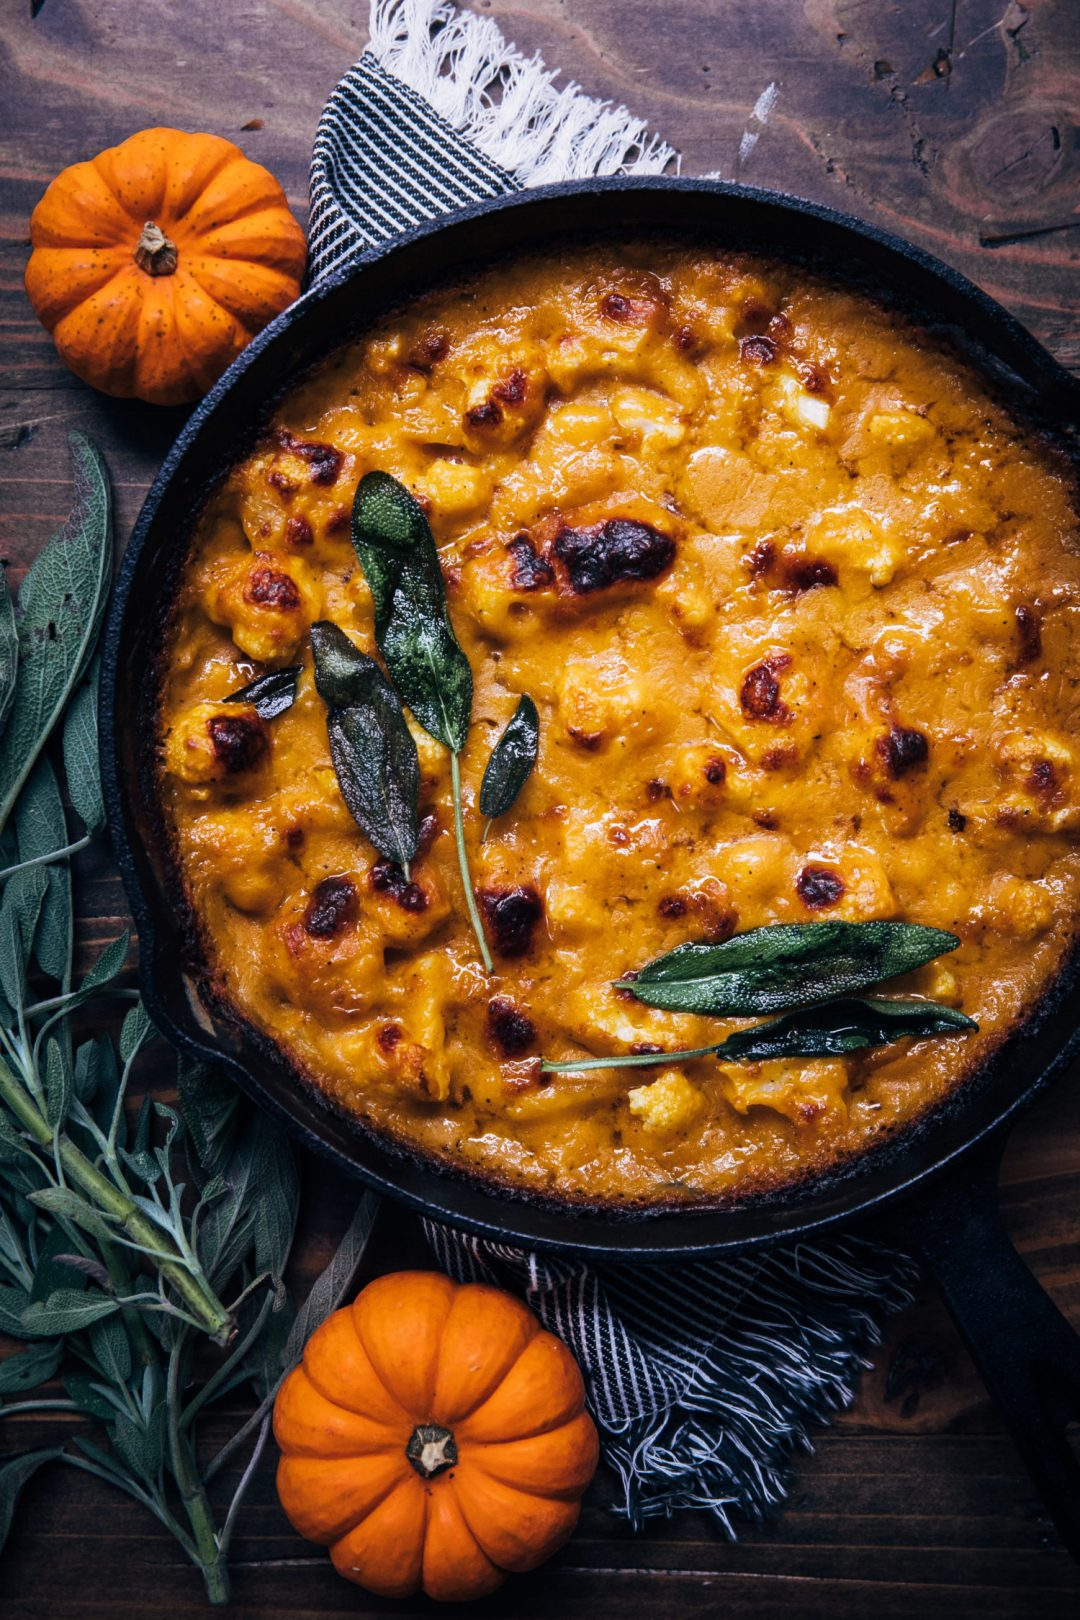 If you're a pumpkin lover just like me you're going to love these easy to make pumpkin recipes-everything from breakfast to dinner and dessert. #pumpkinrecipes